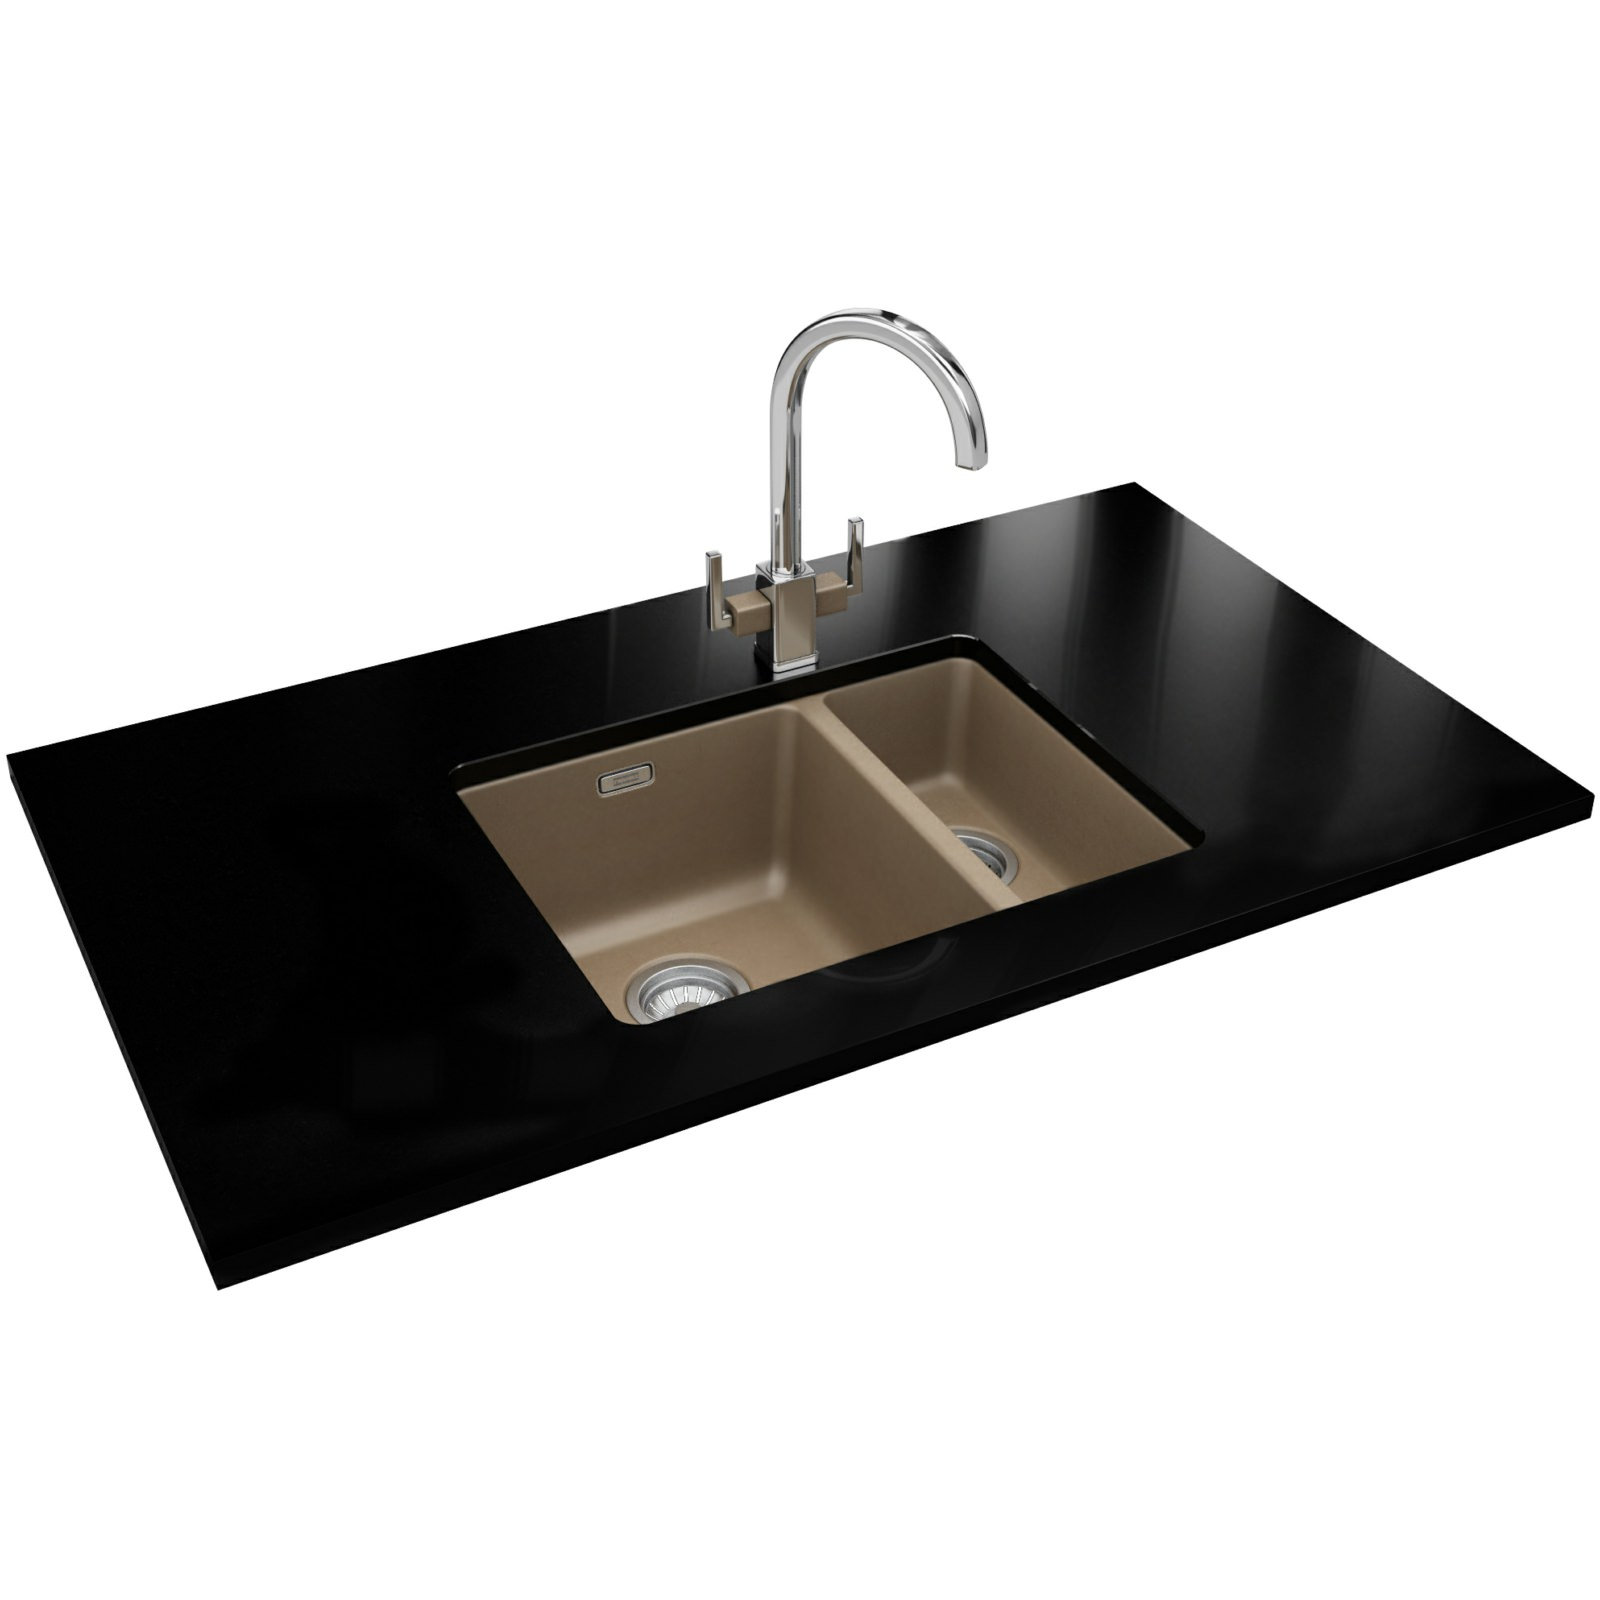 Franke Sinks And Taps : Franke Kubus Designer Pack KBG 160 Fragranite Oyster Sink And Tap ...